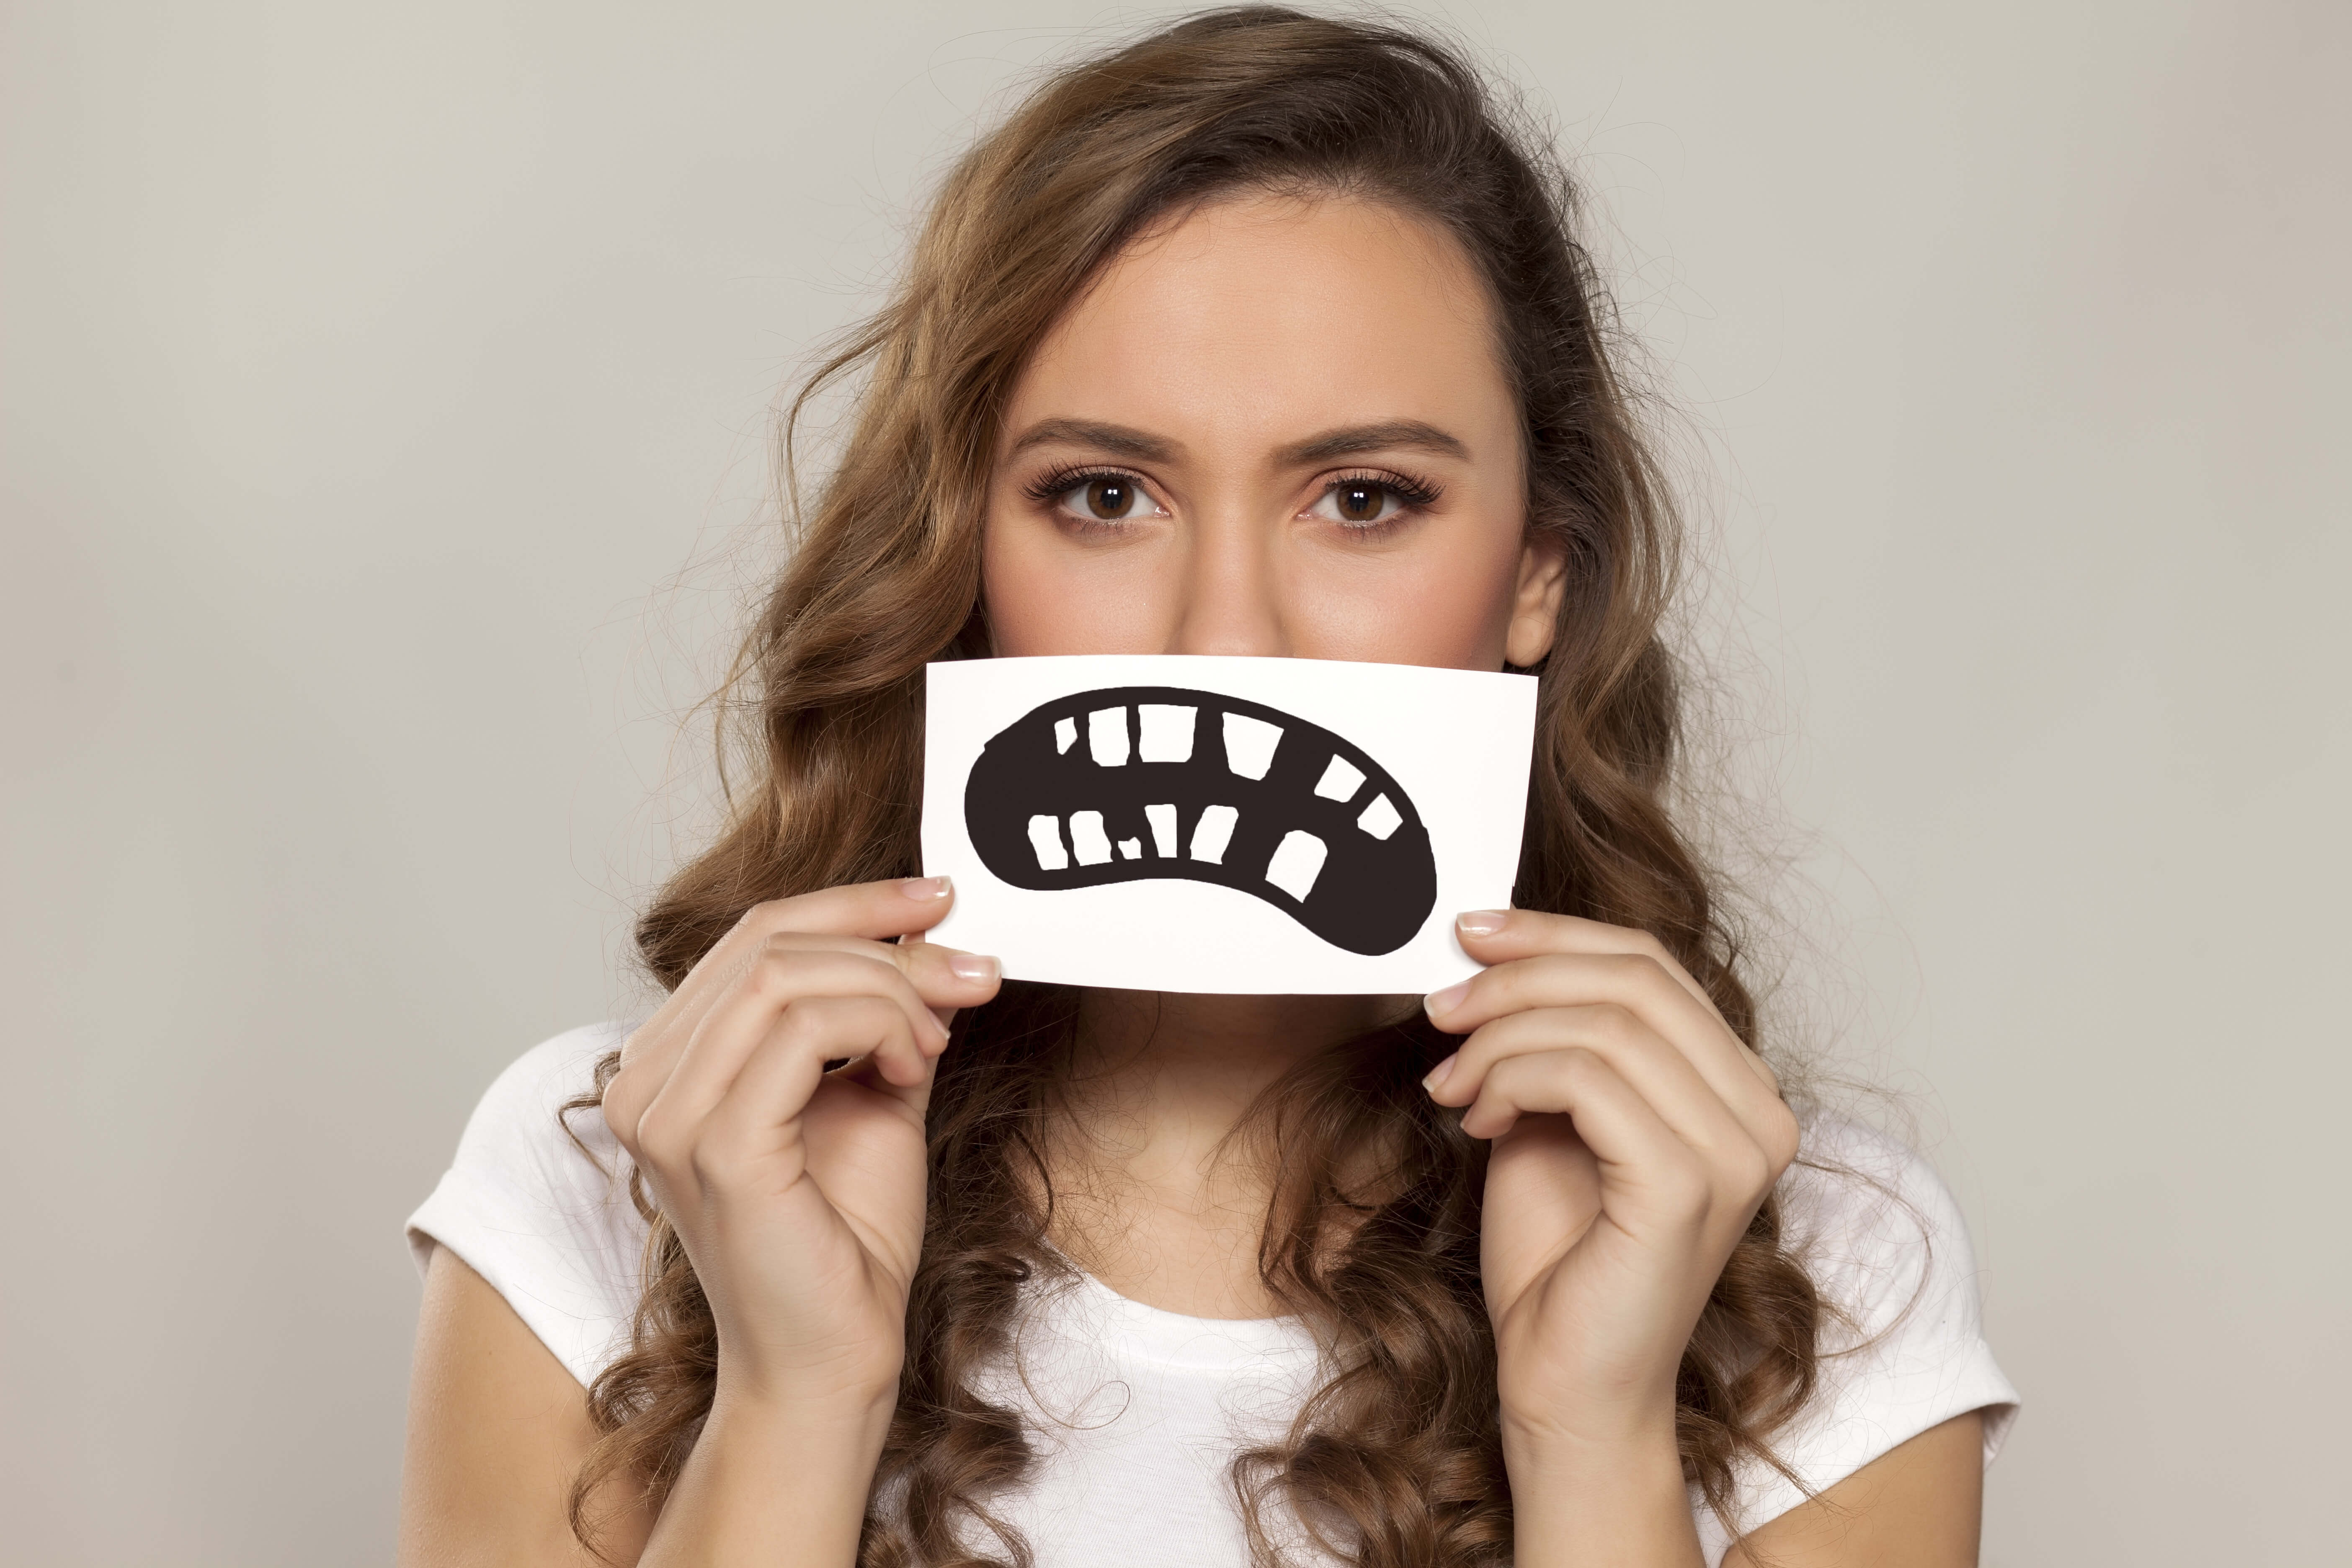 fix your crooked teeth by wearing braces or a retainer or invisalign